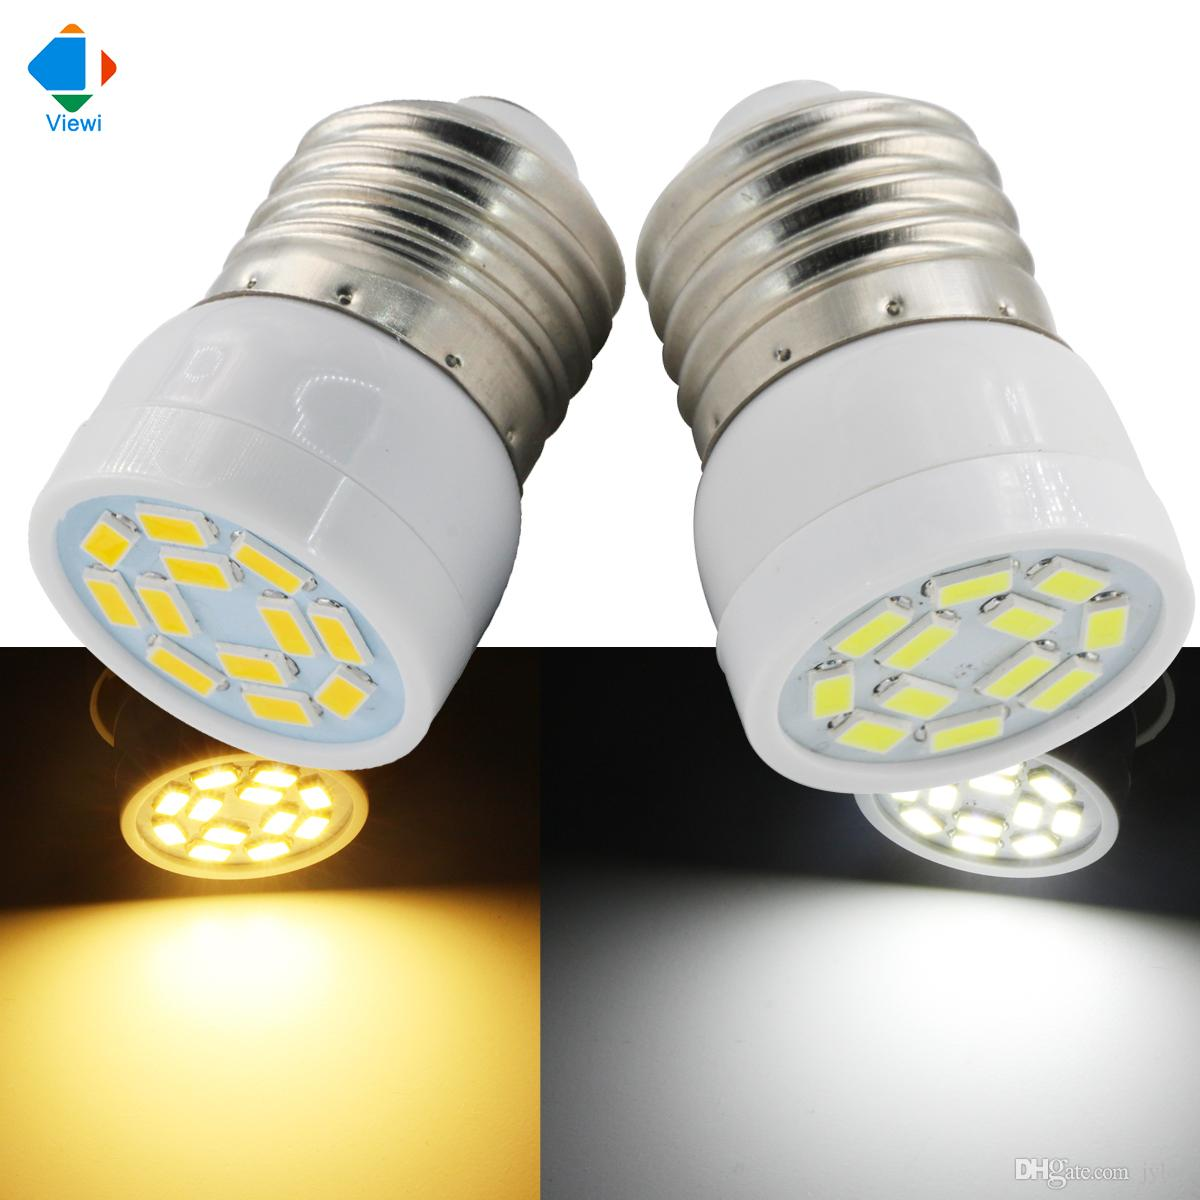 Genial 5x Lampada Led Lamp E27 Small Super Led Bulb Light For Home 110v 220v Smd  5730 12 Leds Energy Saving Lampe Mini Ampolletas Halogen Light Bulbs Led  Light ...